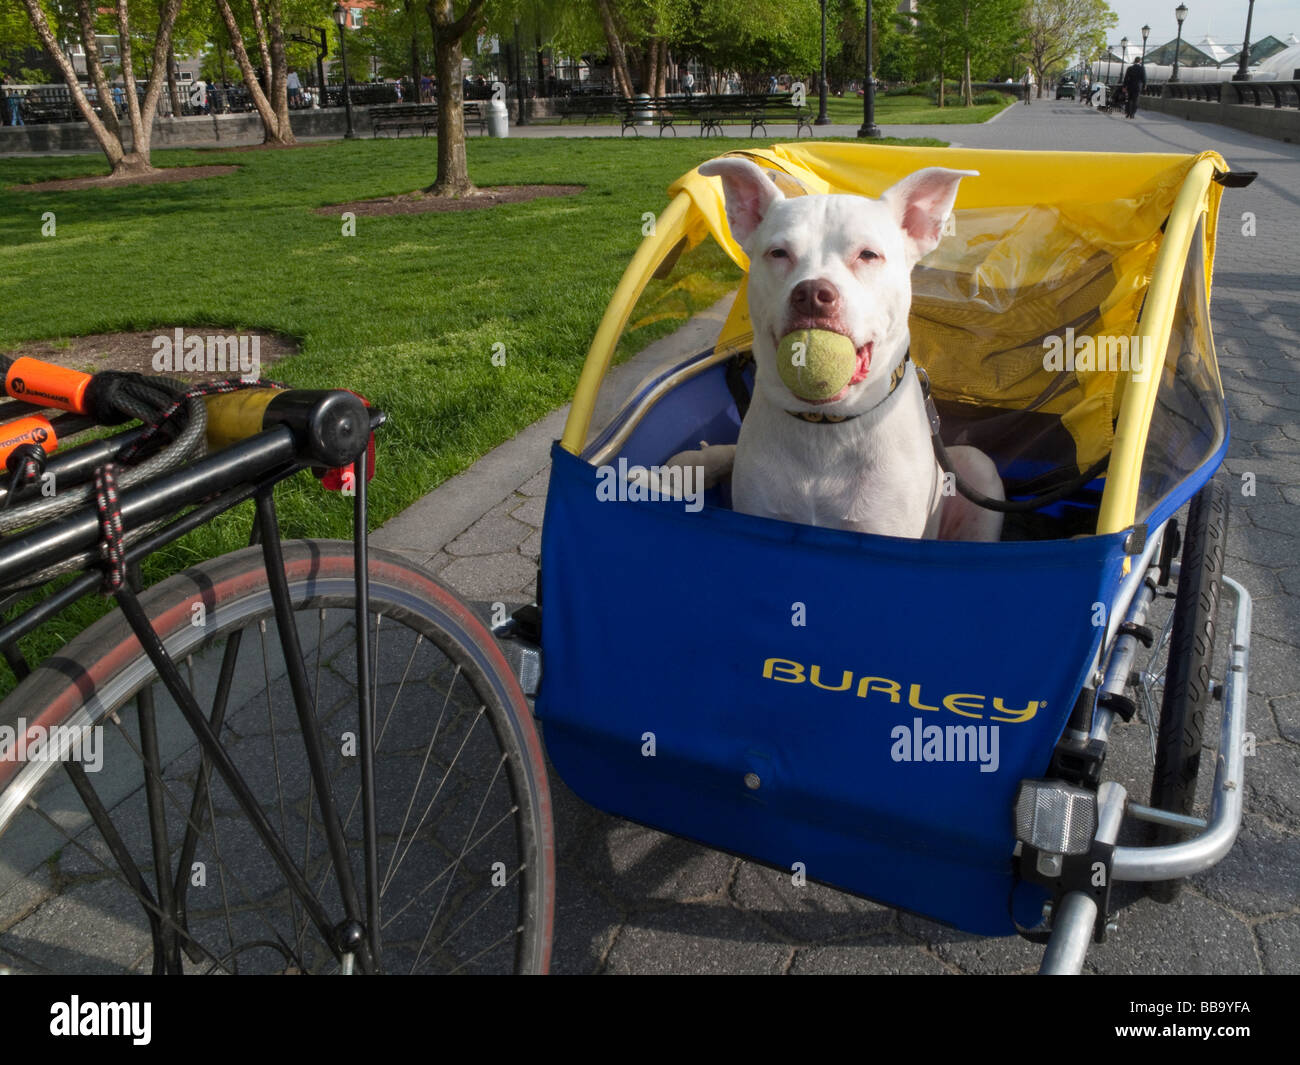 Bumpy, a white Pit Bull, with his ball in his new trailer at Battery Park City. ©Stacy Walsh Rosenstock/Alamy - Stock Image